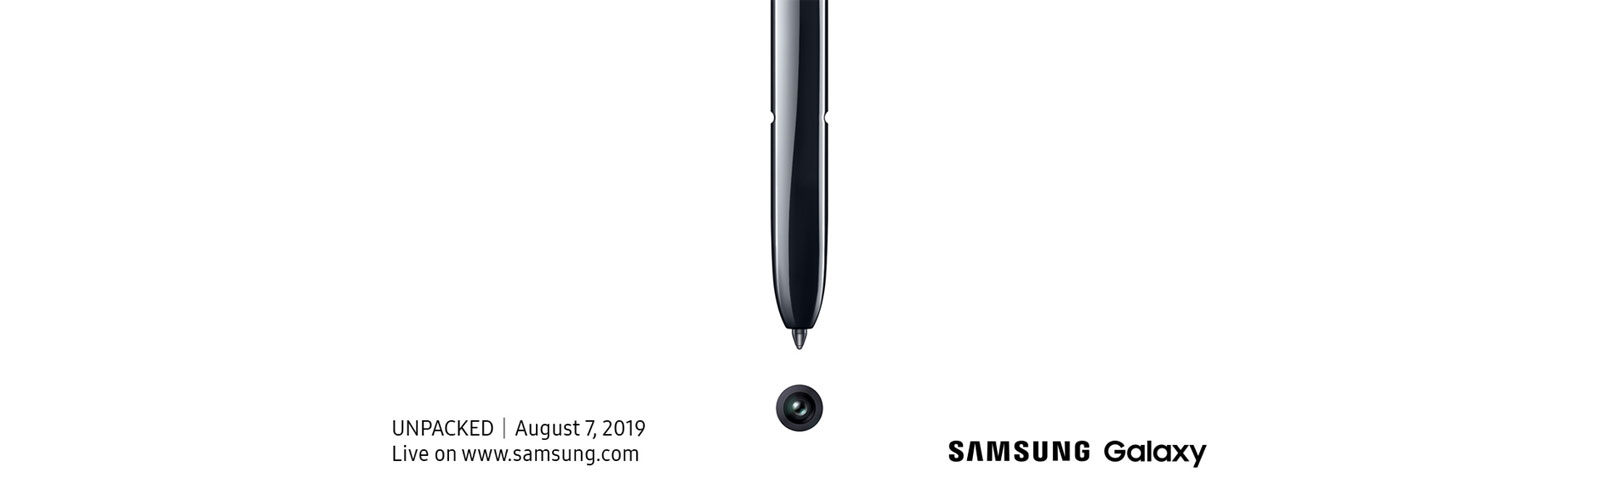 The Samsung Galaxy Note 10 series will go on sale on August 23rd in South Korea